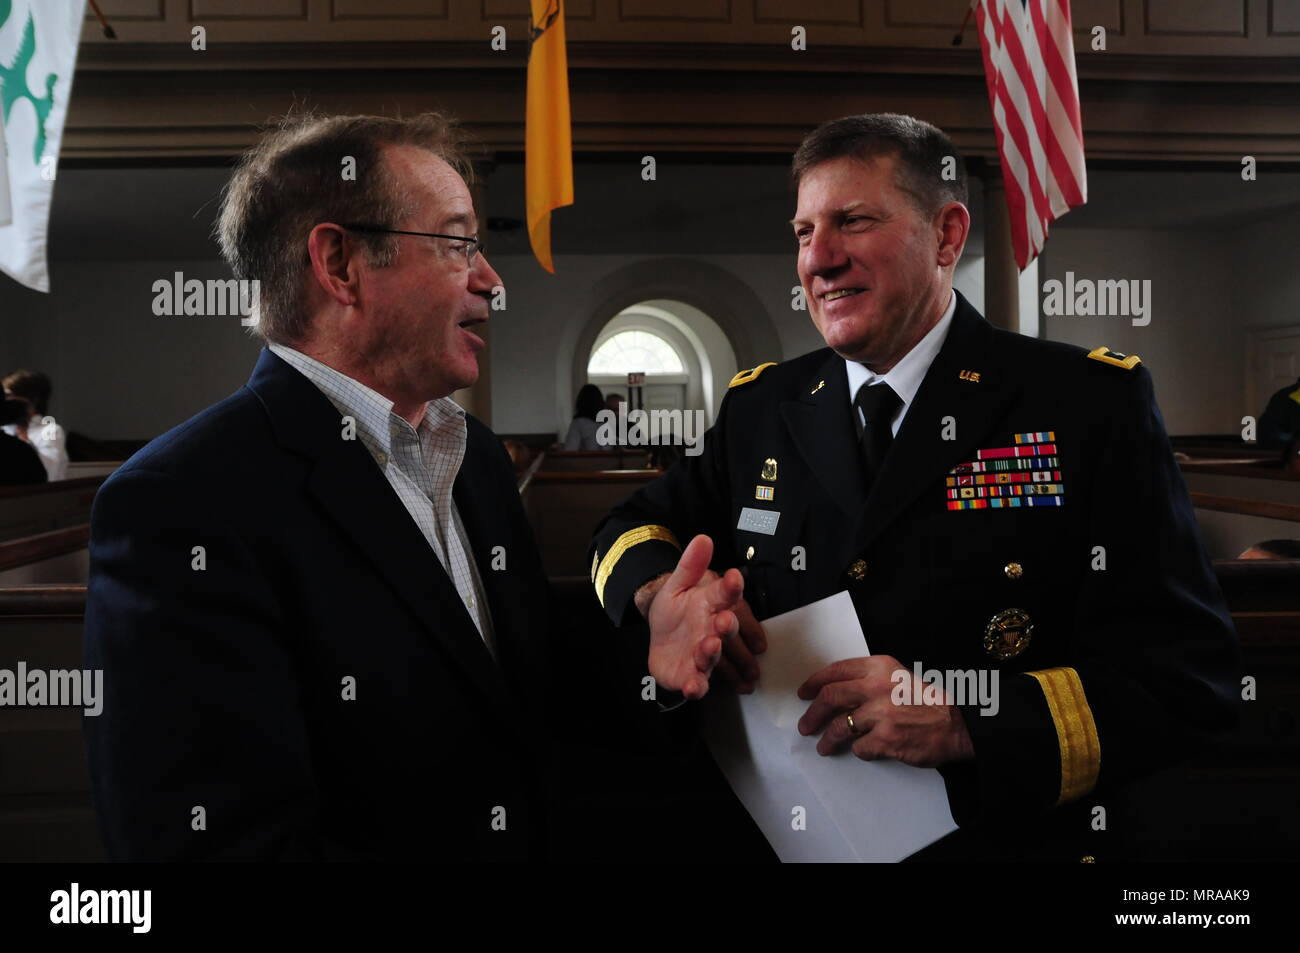 William Flynn Stock Photos & William Flynn Stock Images - Alamy